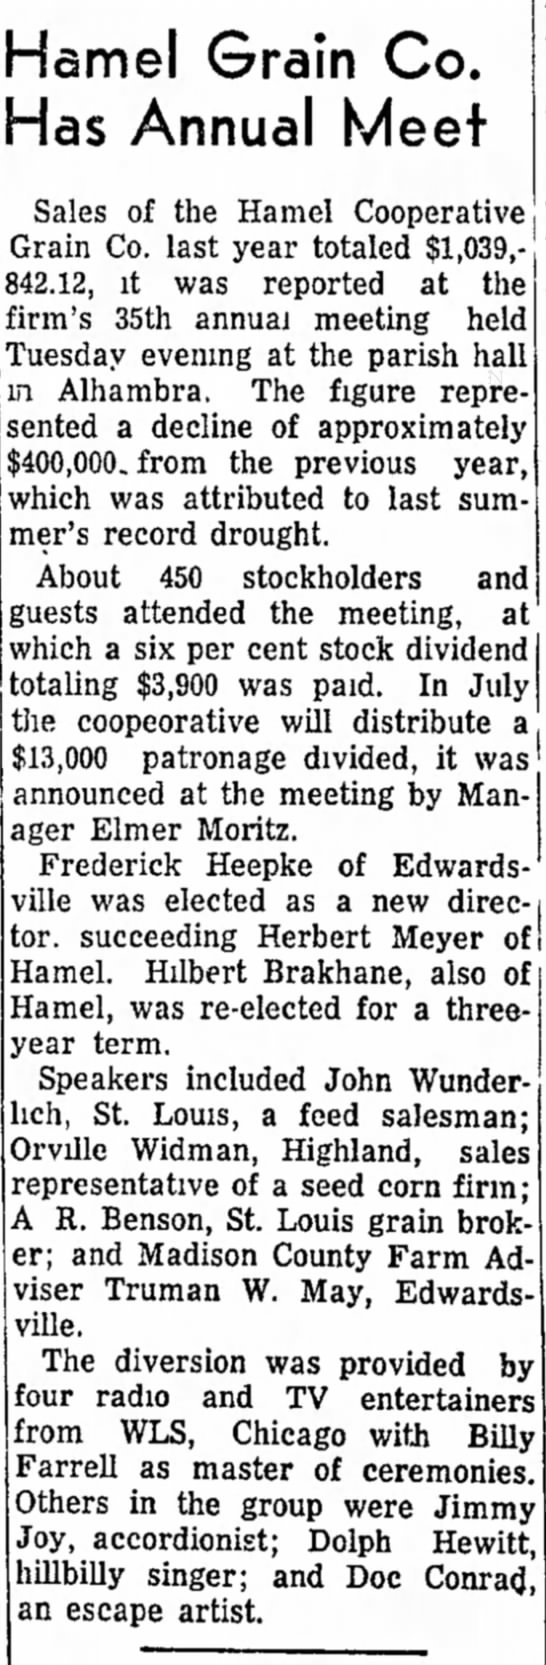 The Edwardsville Intelligencer, Edwardsville, Illinois 2 March 1955 -